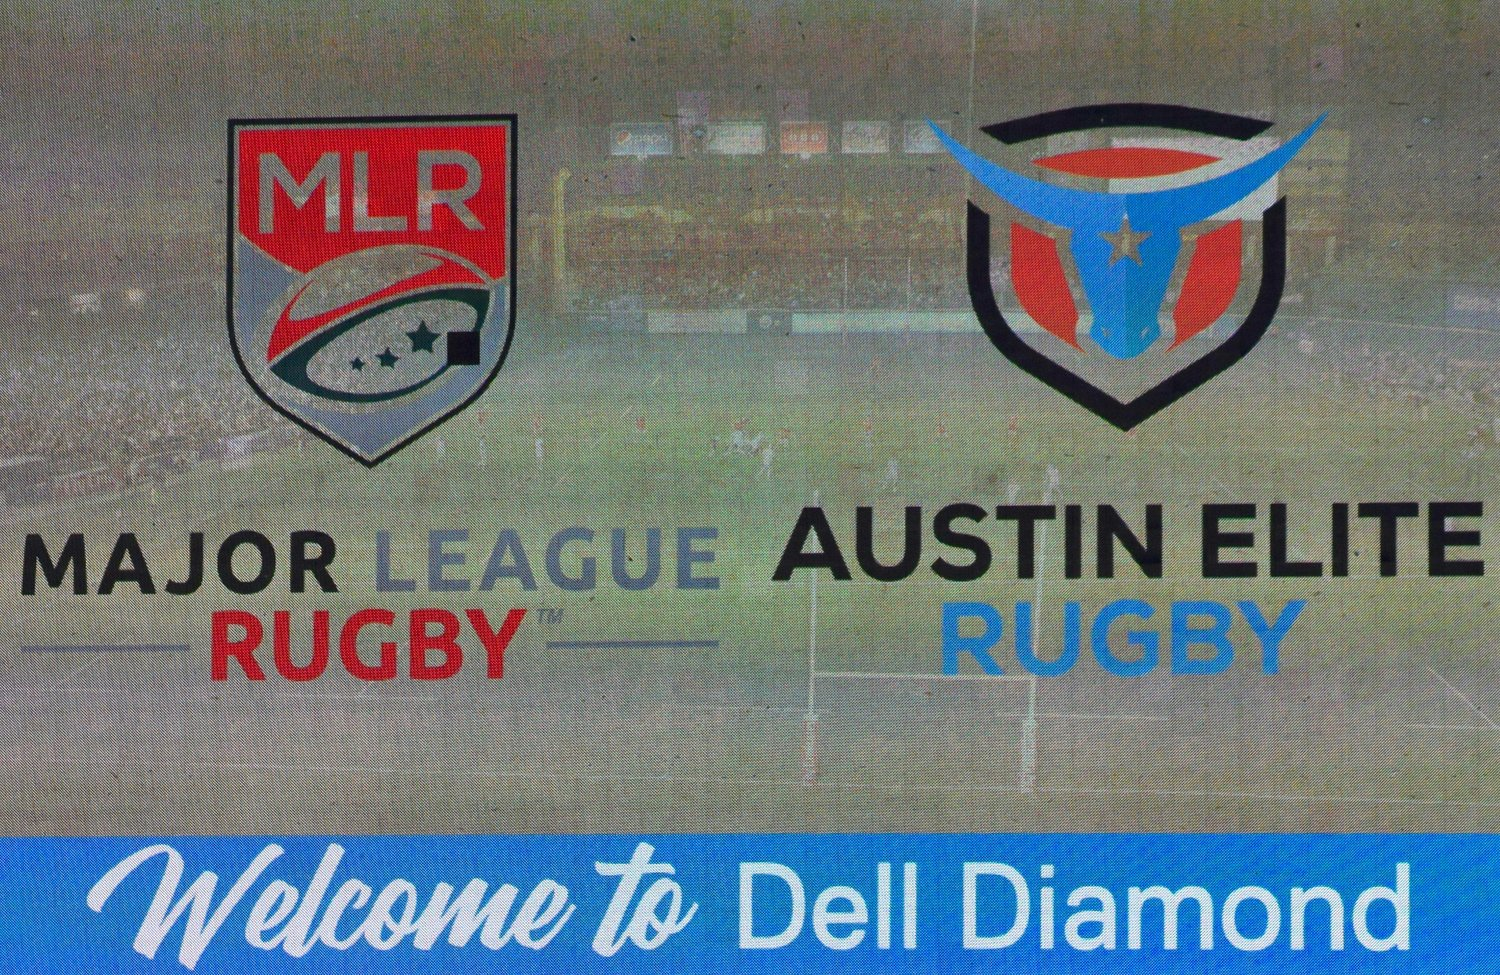 Austin Elite Rugby will play six of its home games at Dell Dimond next season. They played at the Round Rock Multipurpose Complex during the inaugural season for the team and the league a year ago.